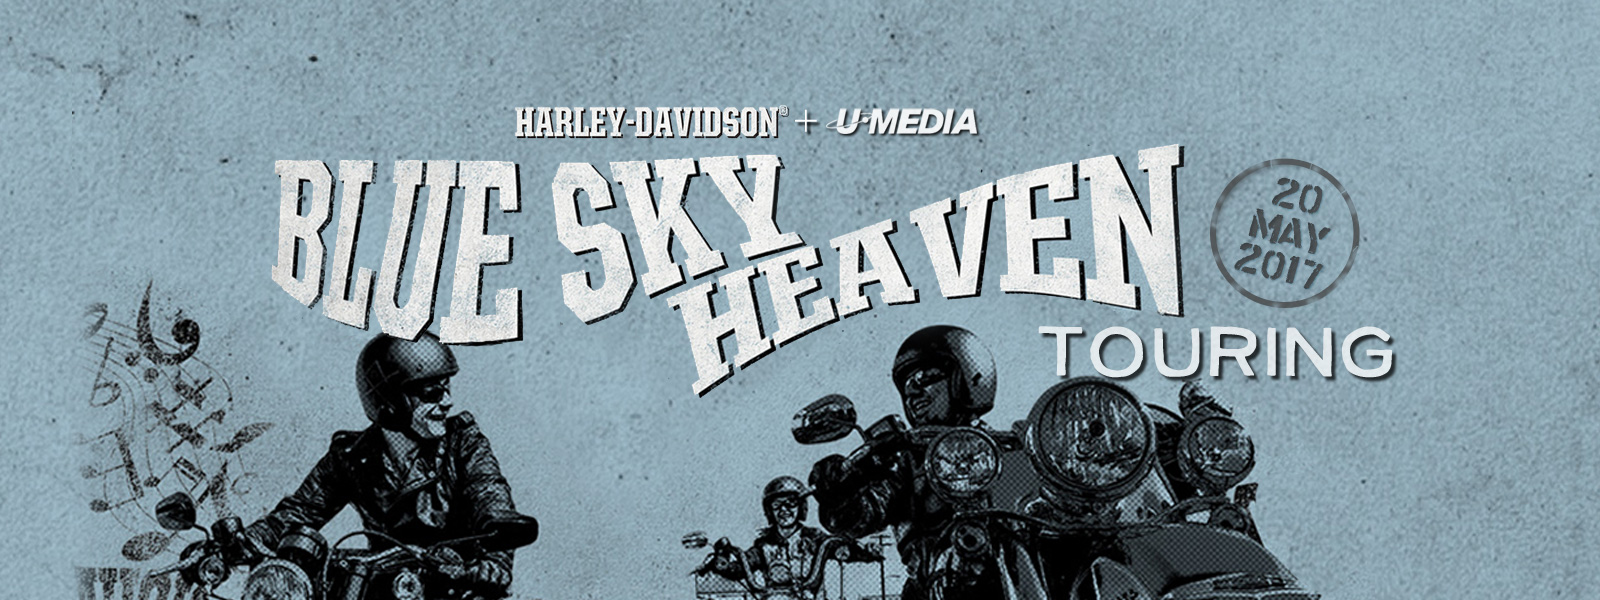 BLUE SKY HEAVEN TOURING 20.MAY.2017